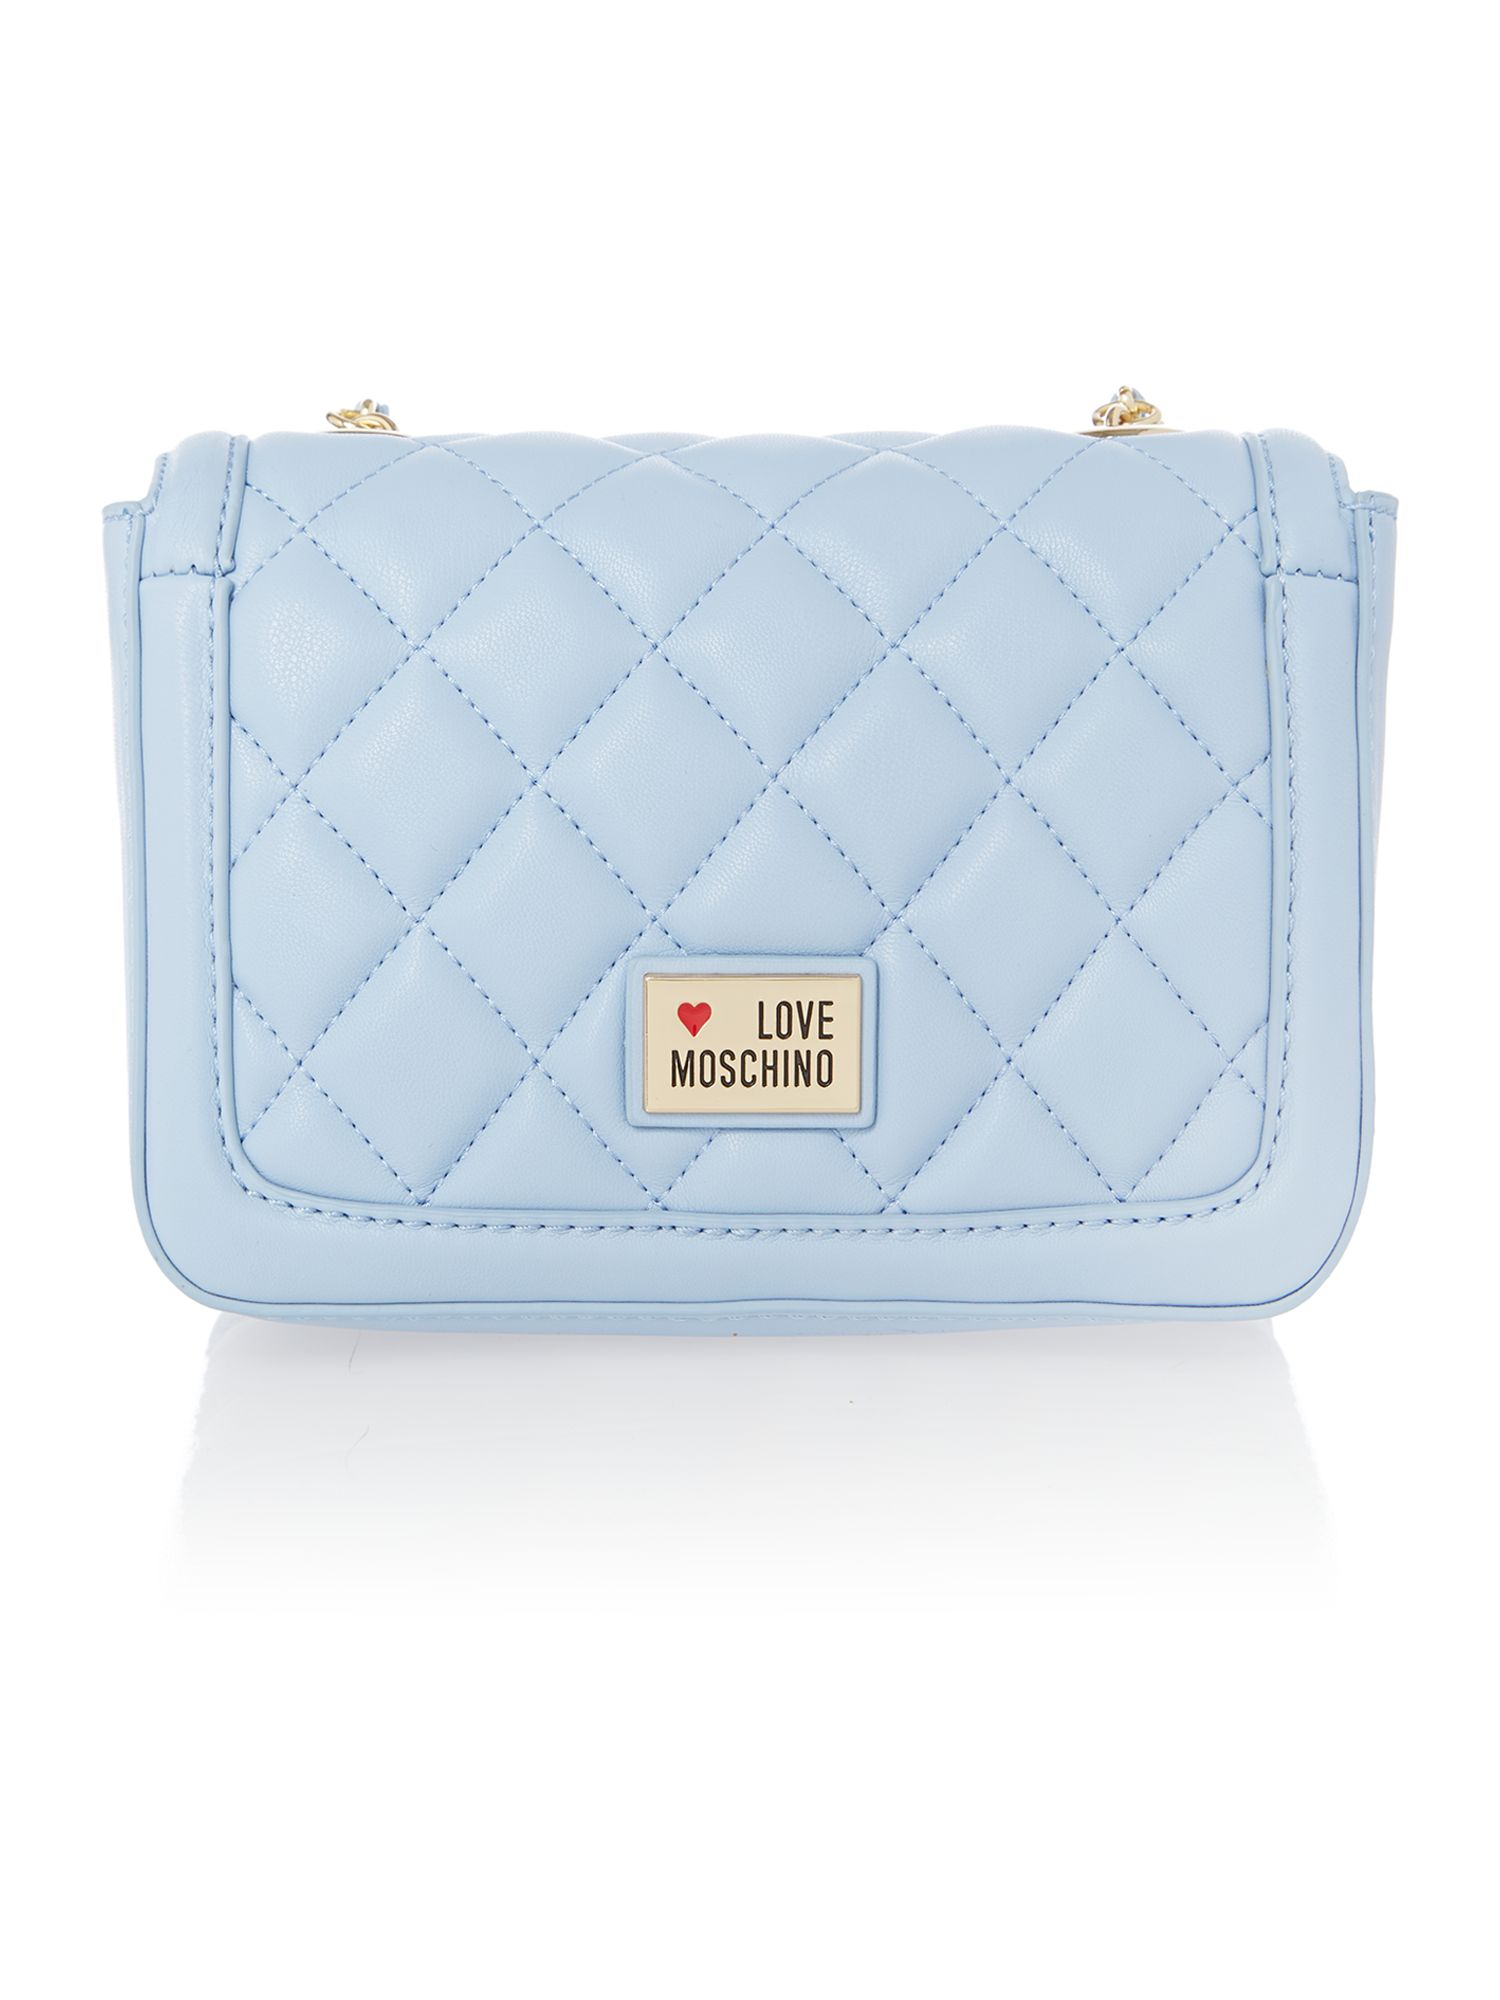 Love moschino Blue Mini Quilt Cross Body Bag in Blue